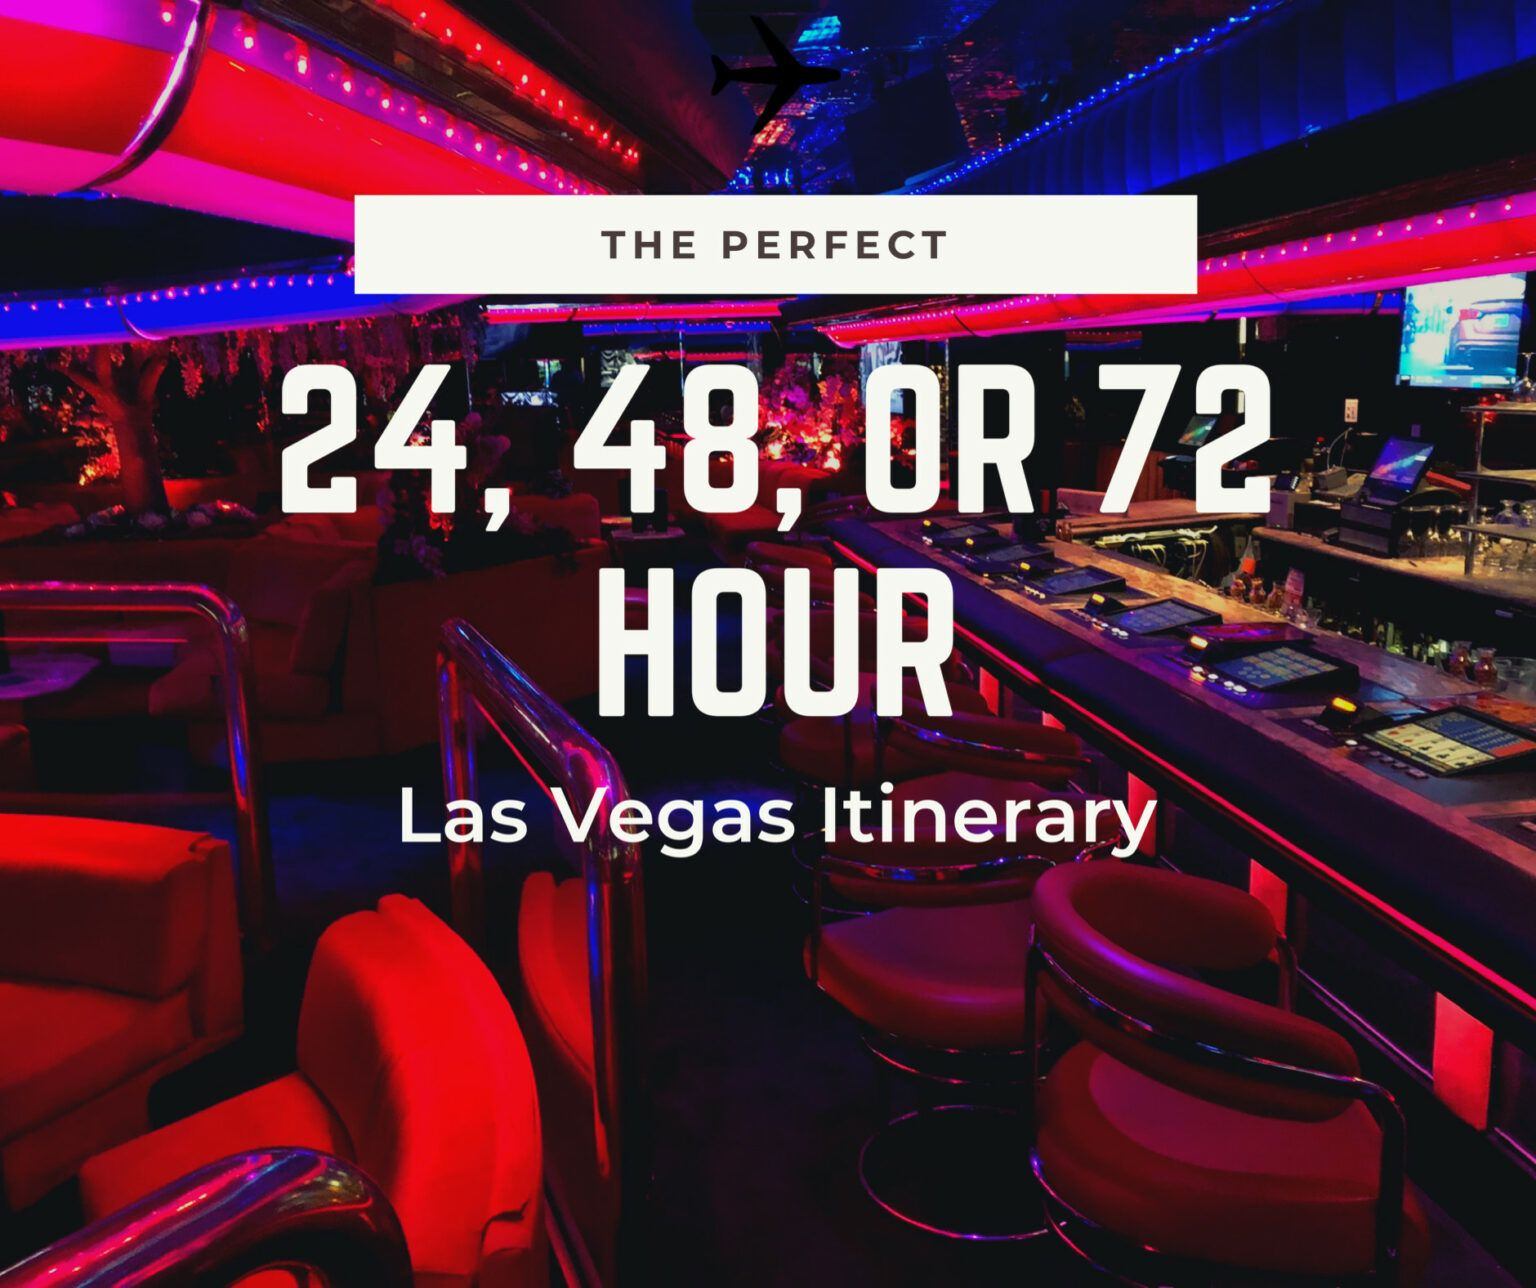 The Caesars Palace is an AAA Four Diamond luxury hotel and